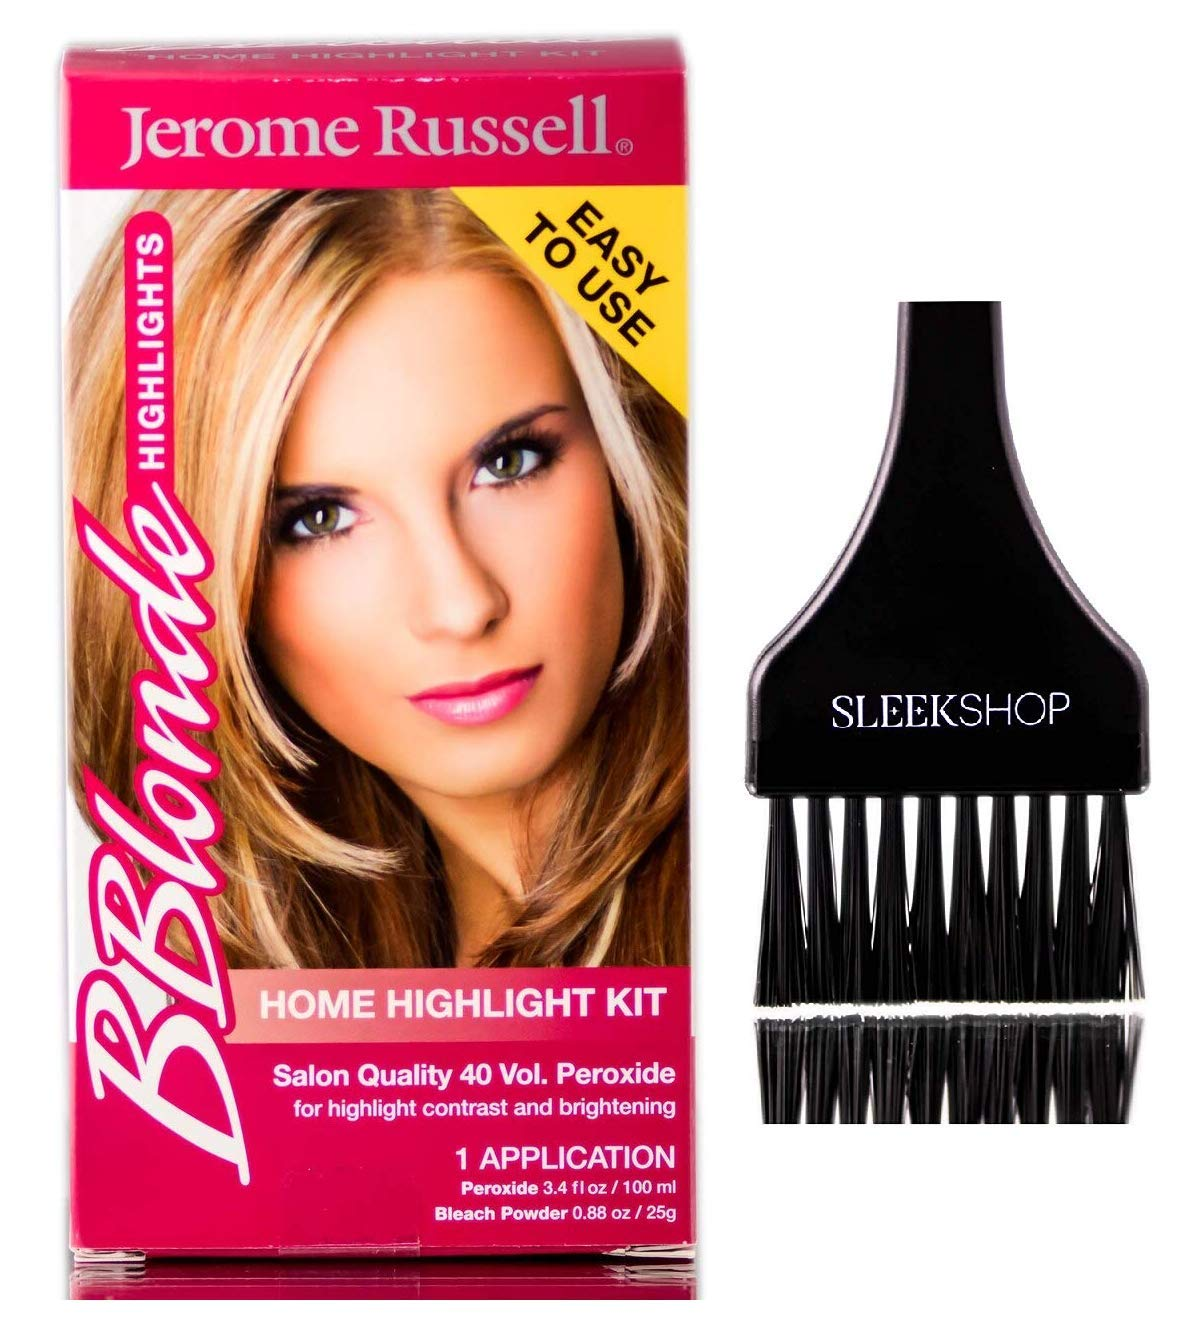 Jerome Russell B BLONDE HIGHLIGHTS Home Highlighting Kit, Be Blonde Salon Quality 40 Volume Peroxide (w/Sleek Brush) Highlight Contrast and Brightening (1 APPLICATION) by Jerome Russell